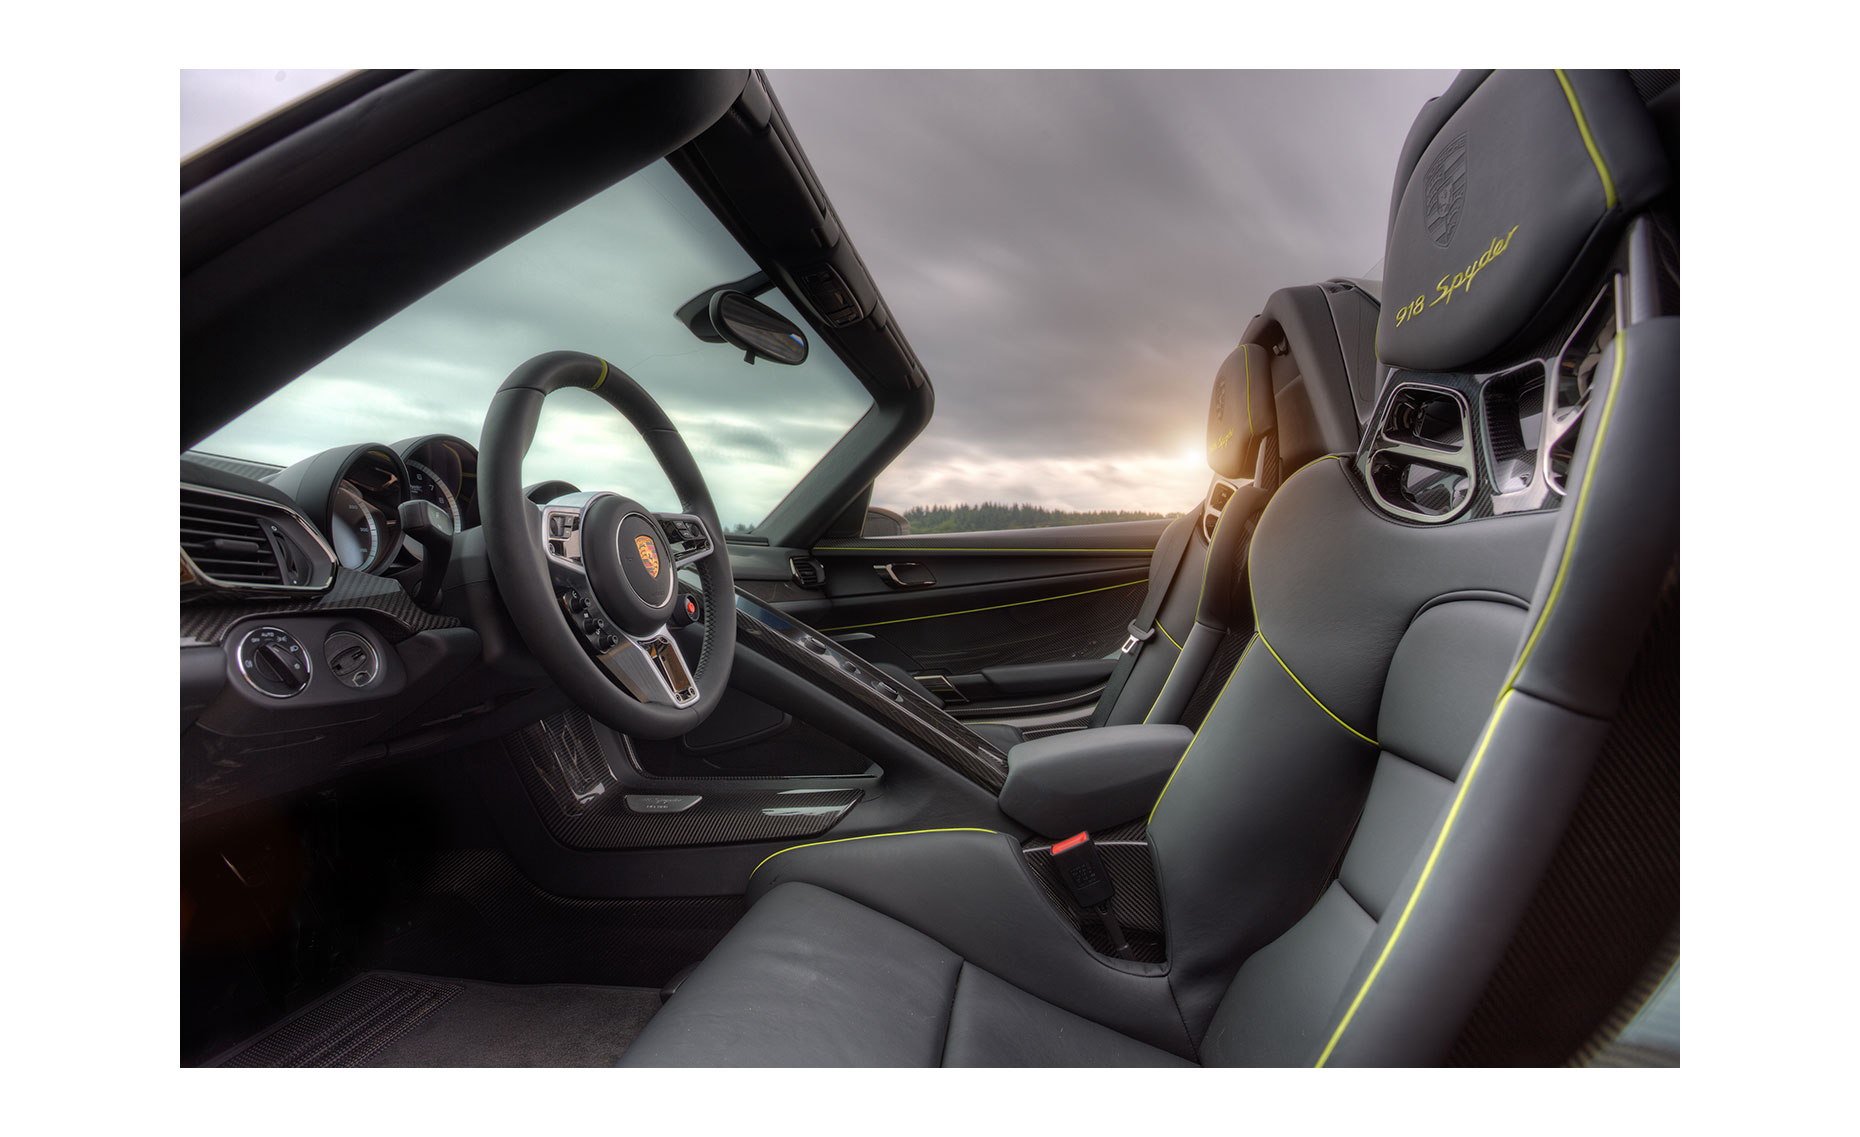 Porsche 918 Spyder Interior| NFP Car Photo